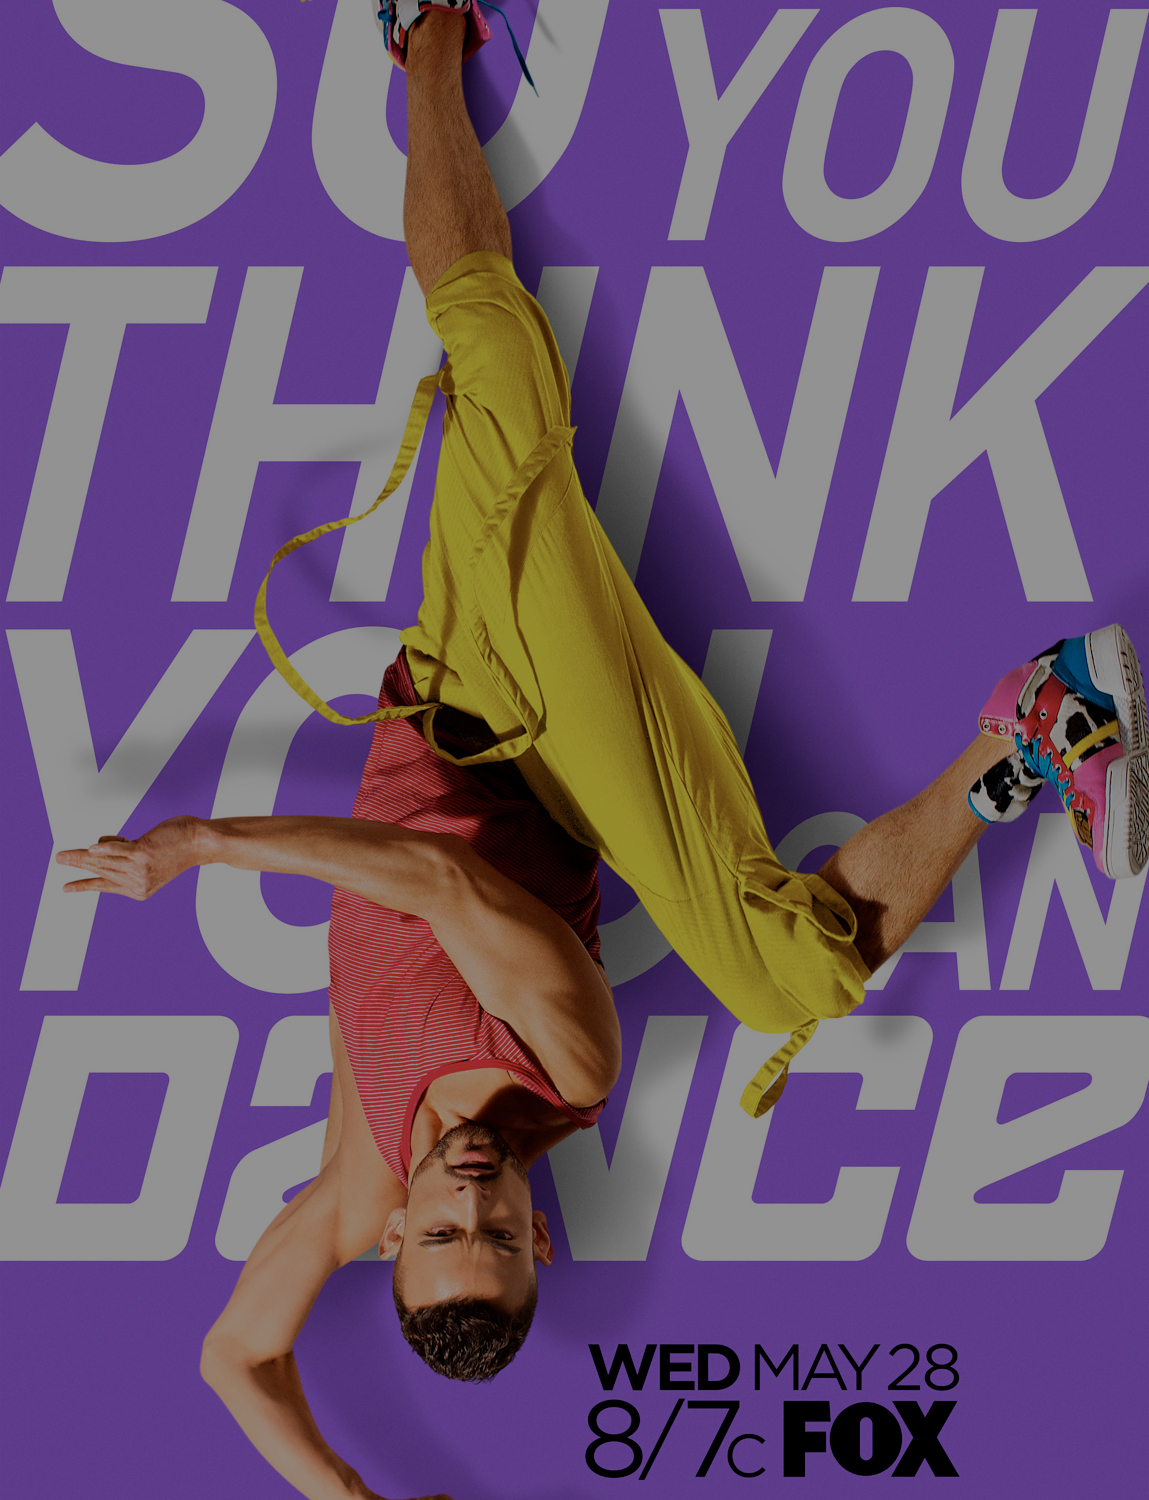 sytycd_cover